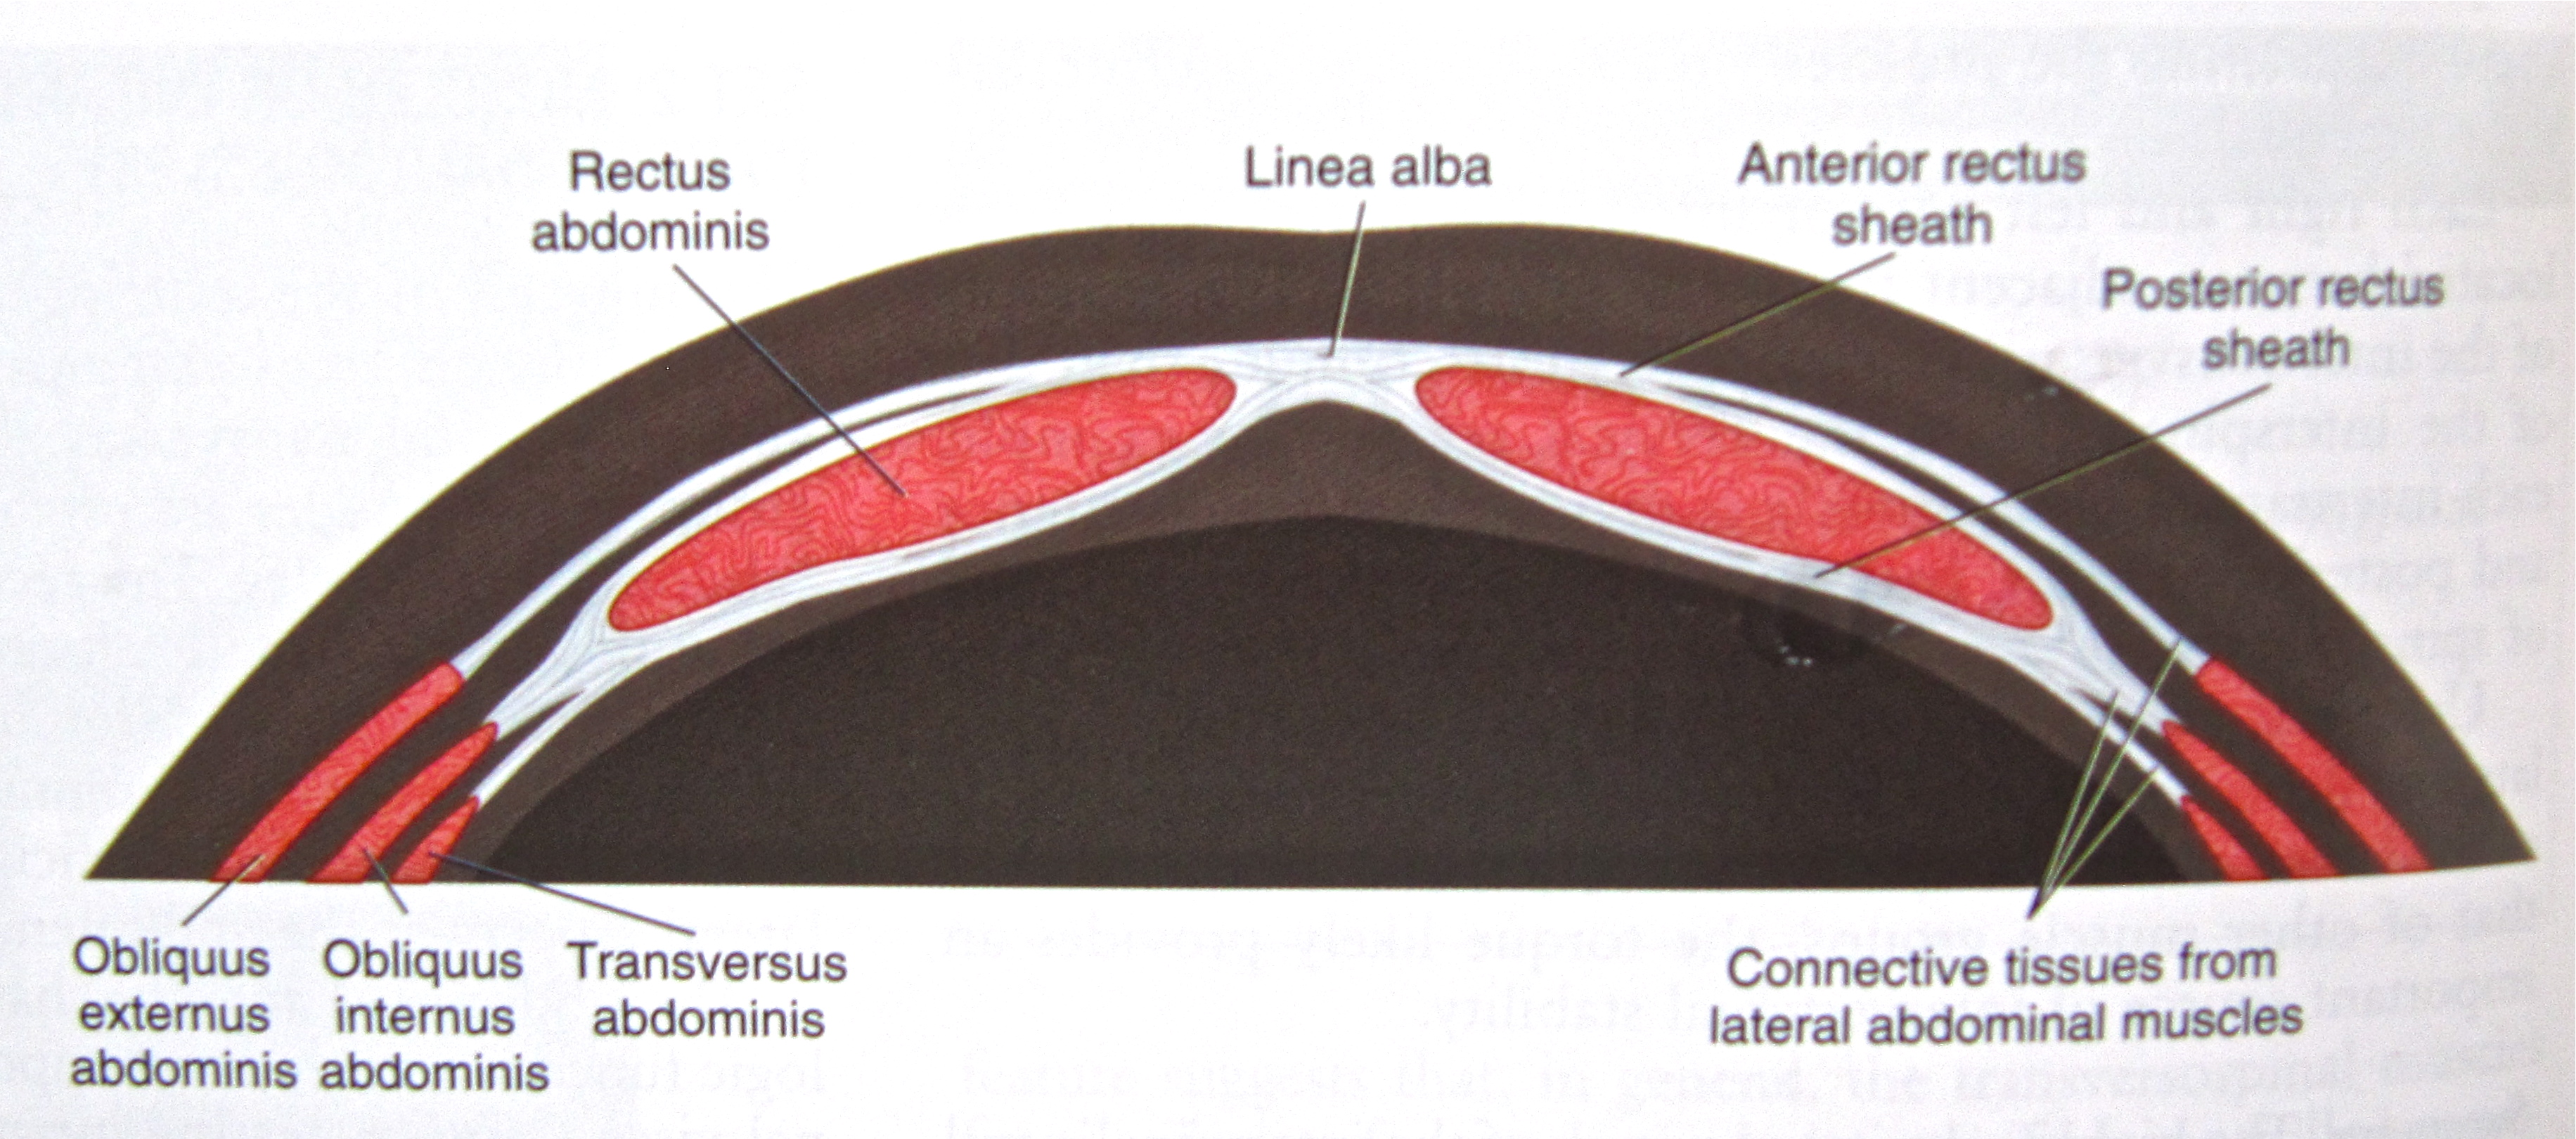 Notes on Anatomy and Physiology: The Thoracolumbar Fascia |